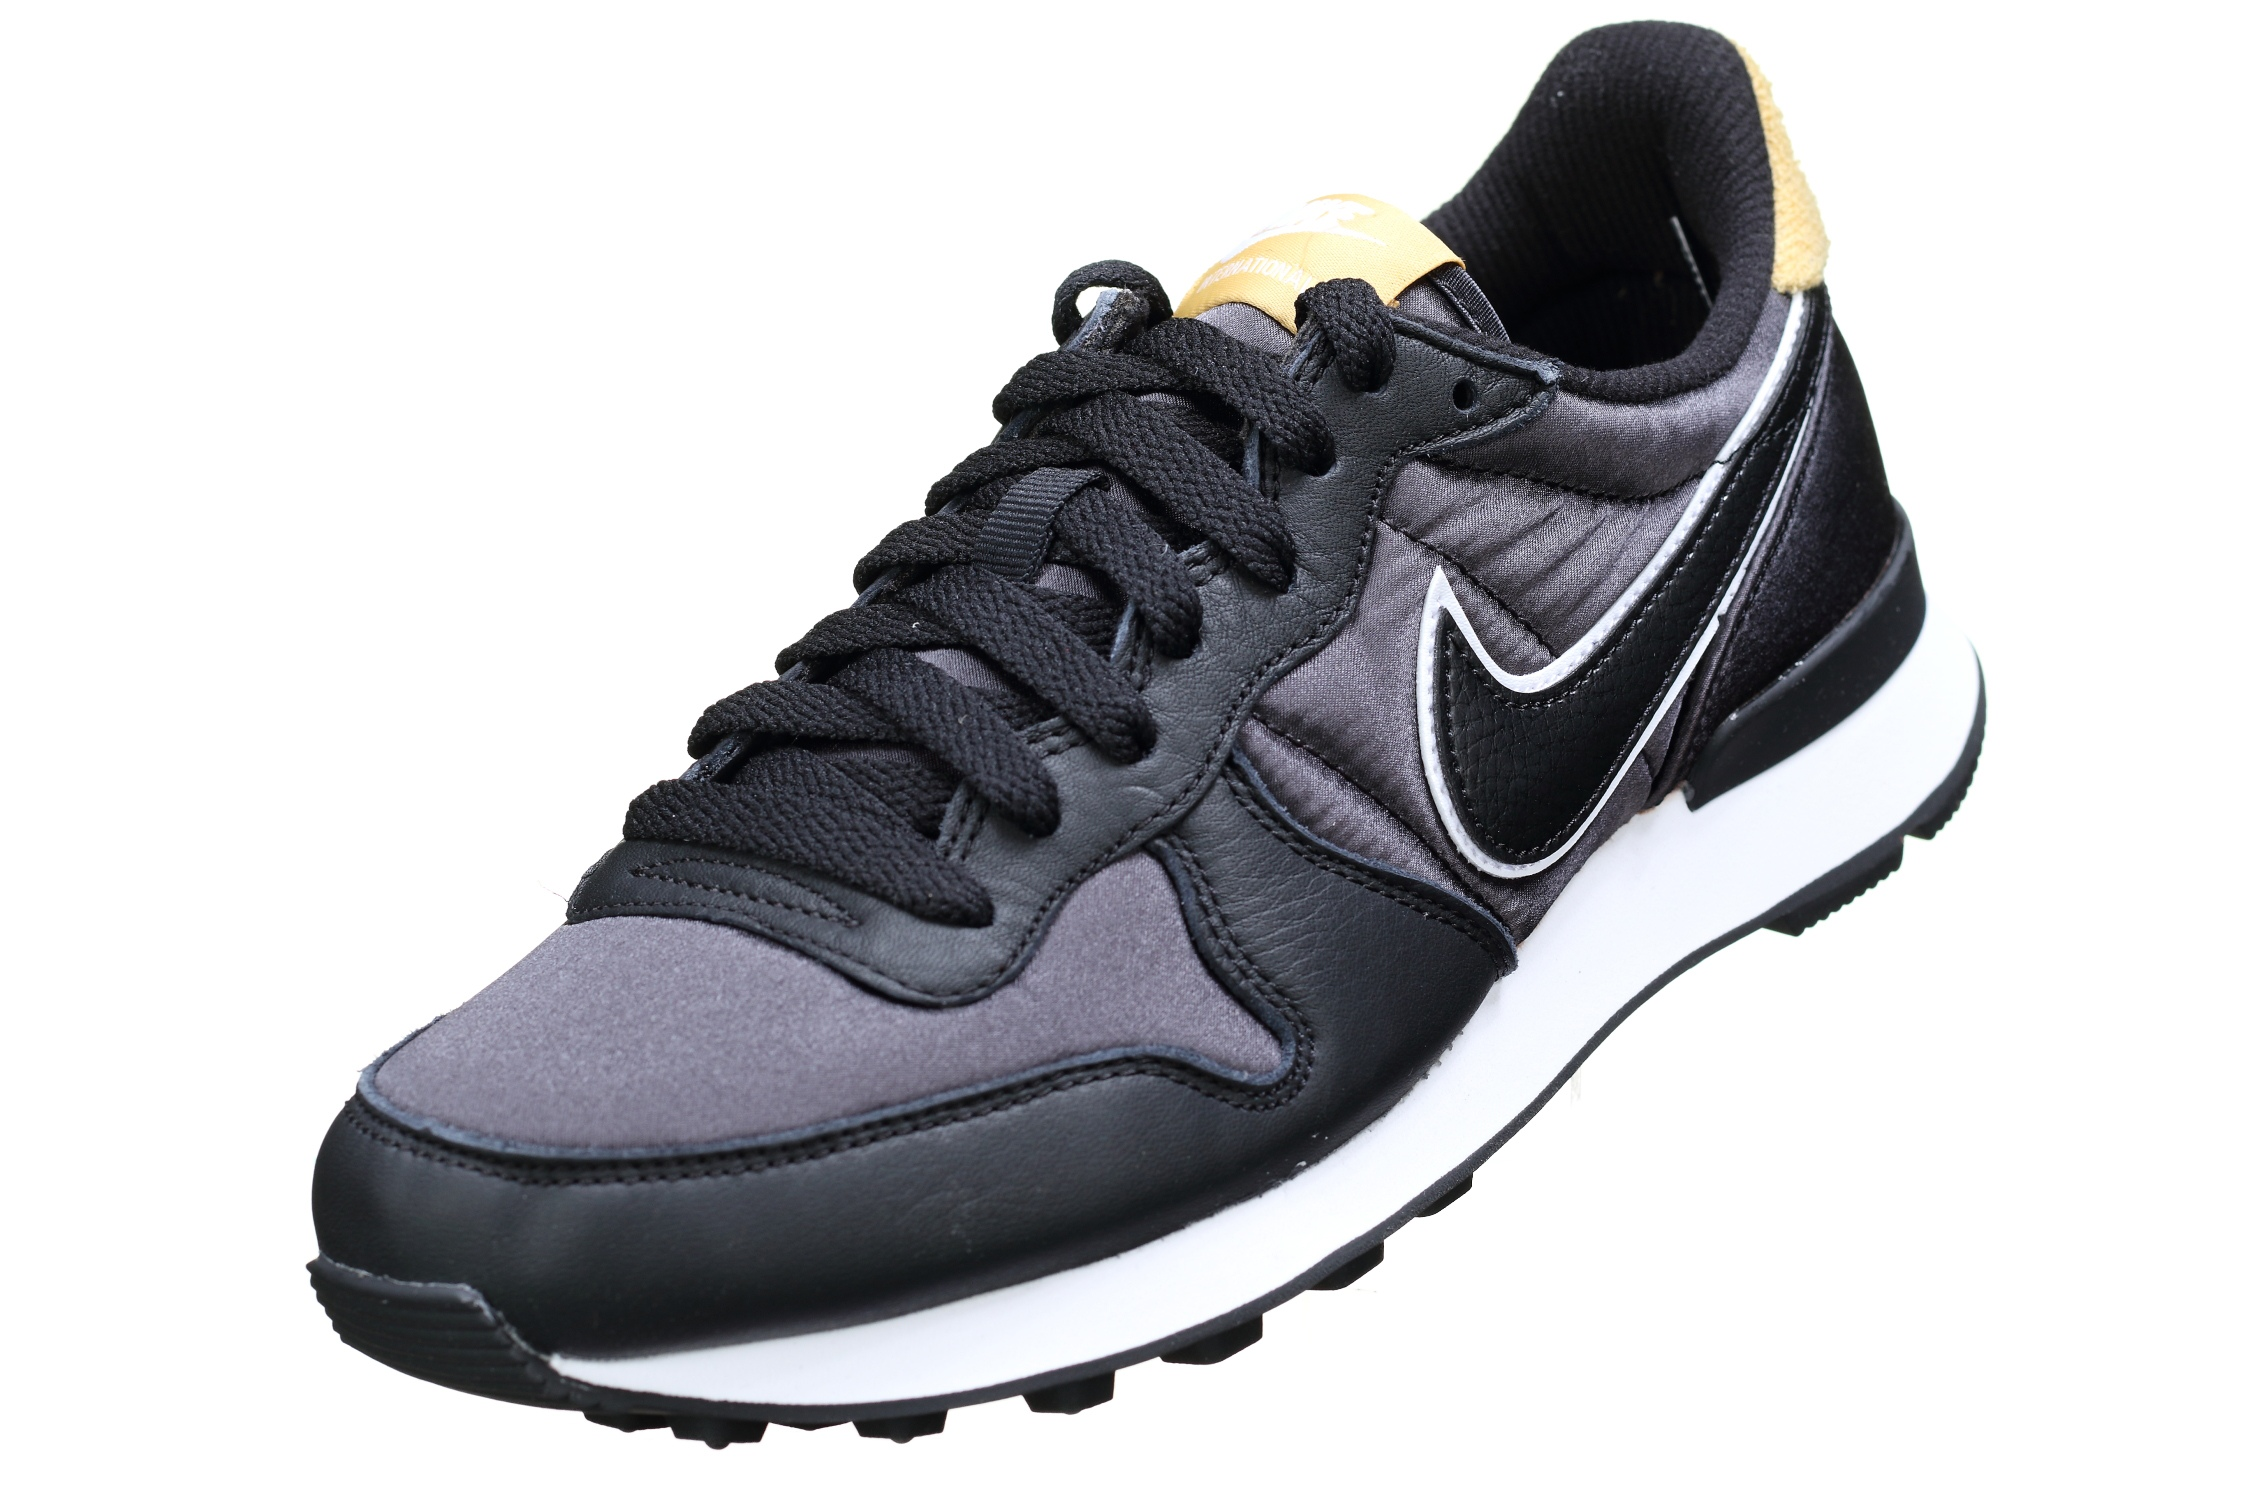 http://www.leadermode.com/151705/nike-w-internationalist-heat-aq1274-001-noir.jpg